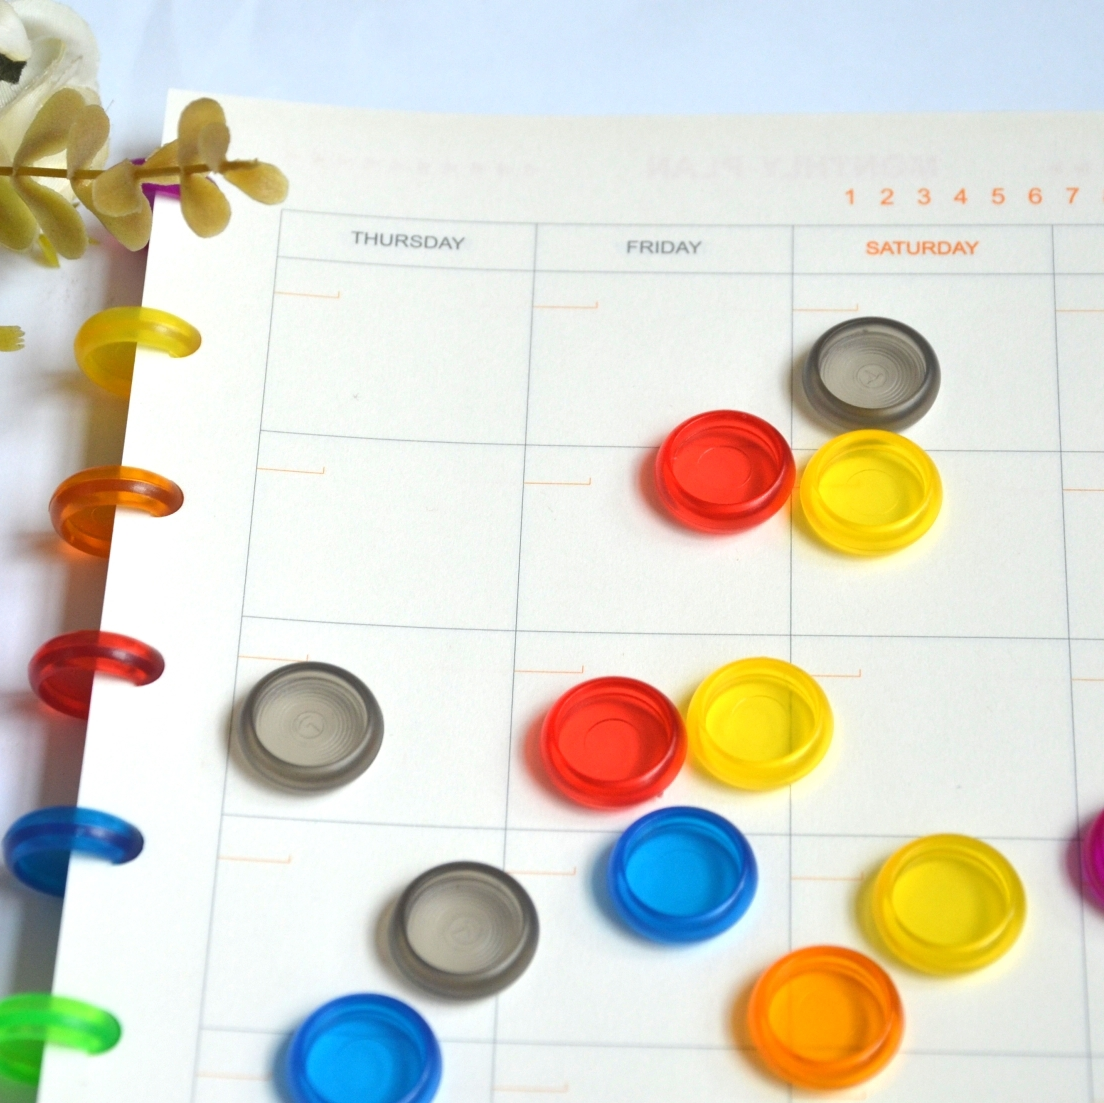 12pcs 18Mm Plastic Binding Disc Notebook Mushroom Hole Button Notepad Plastic Loose-leaf Coil Buckle Colorful Binder Ring